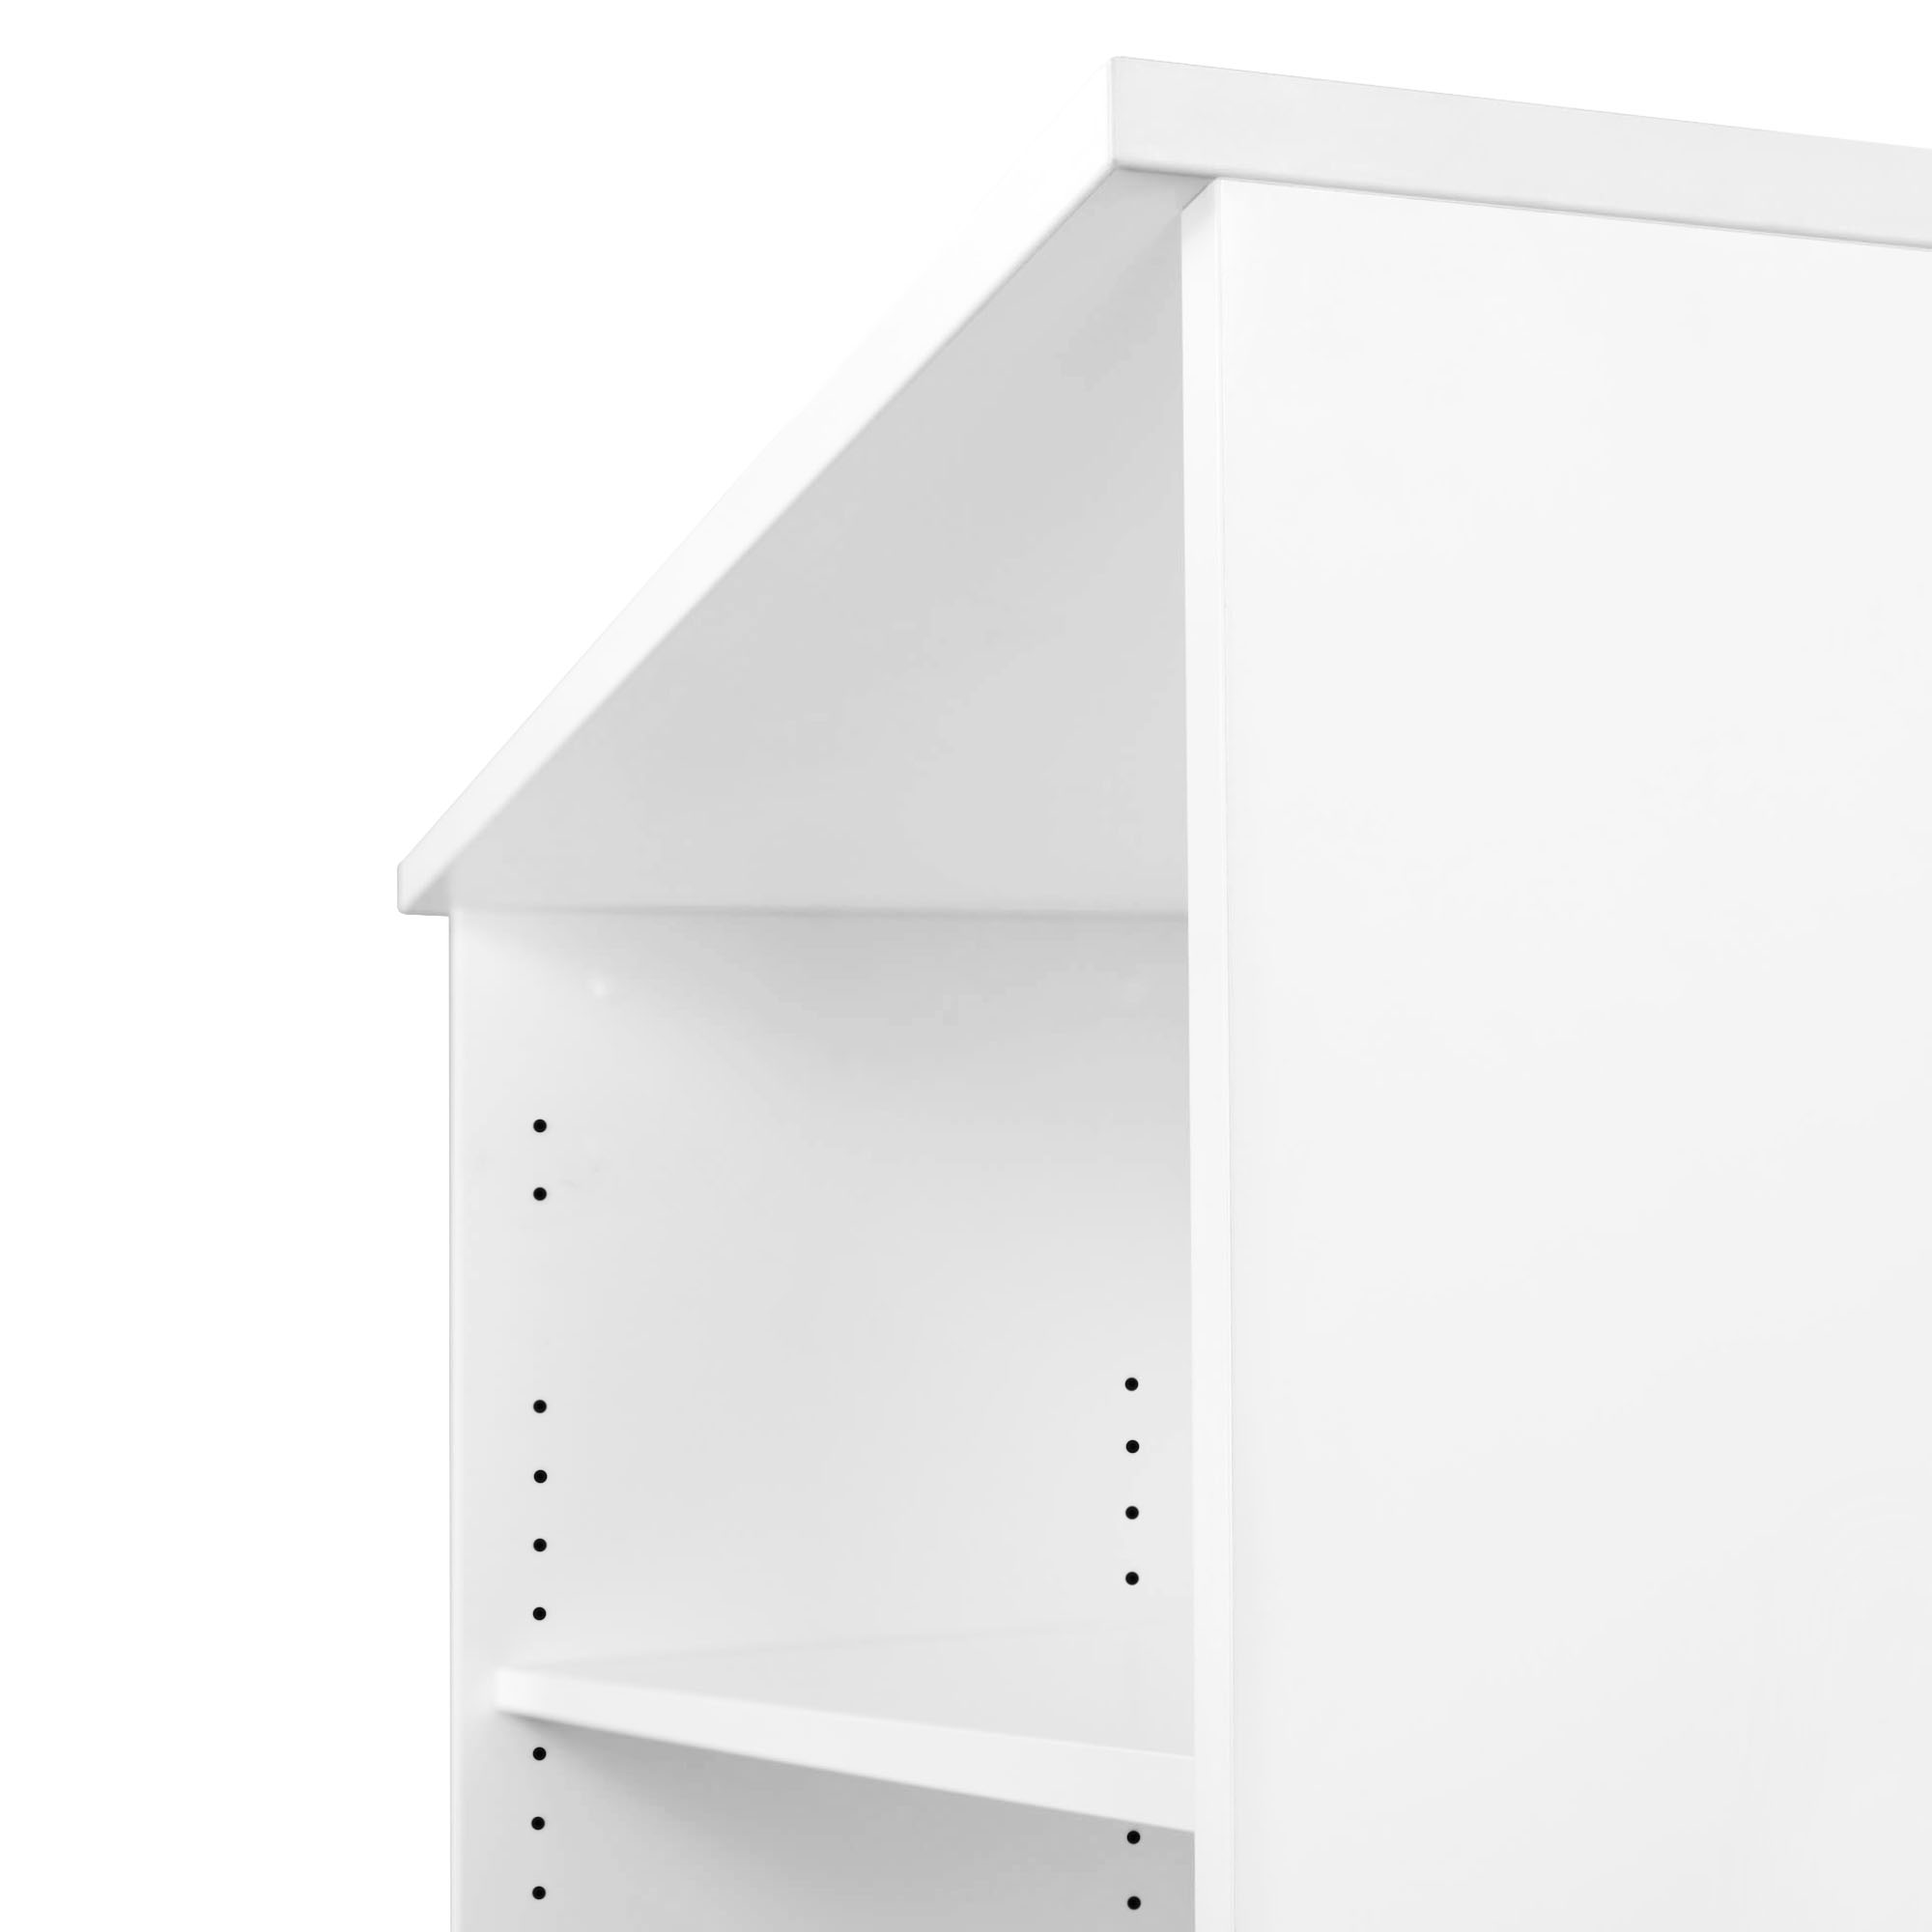 PROFI Bücherregal 3OH Regal Standregal Holzregal Wandregal Schrank Büro Weiß